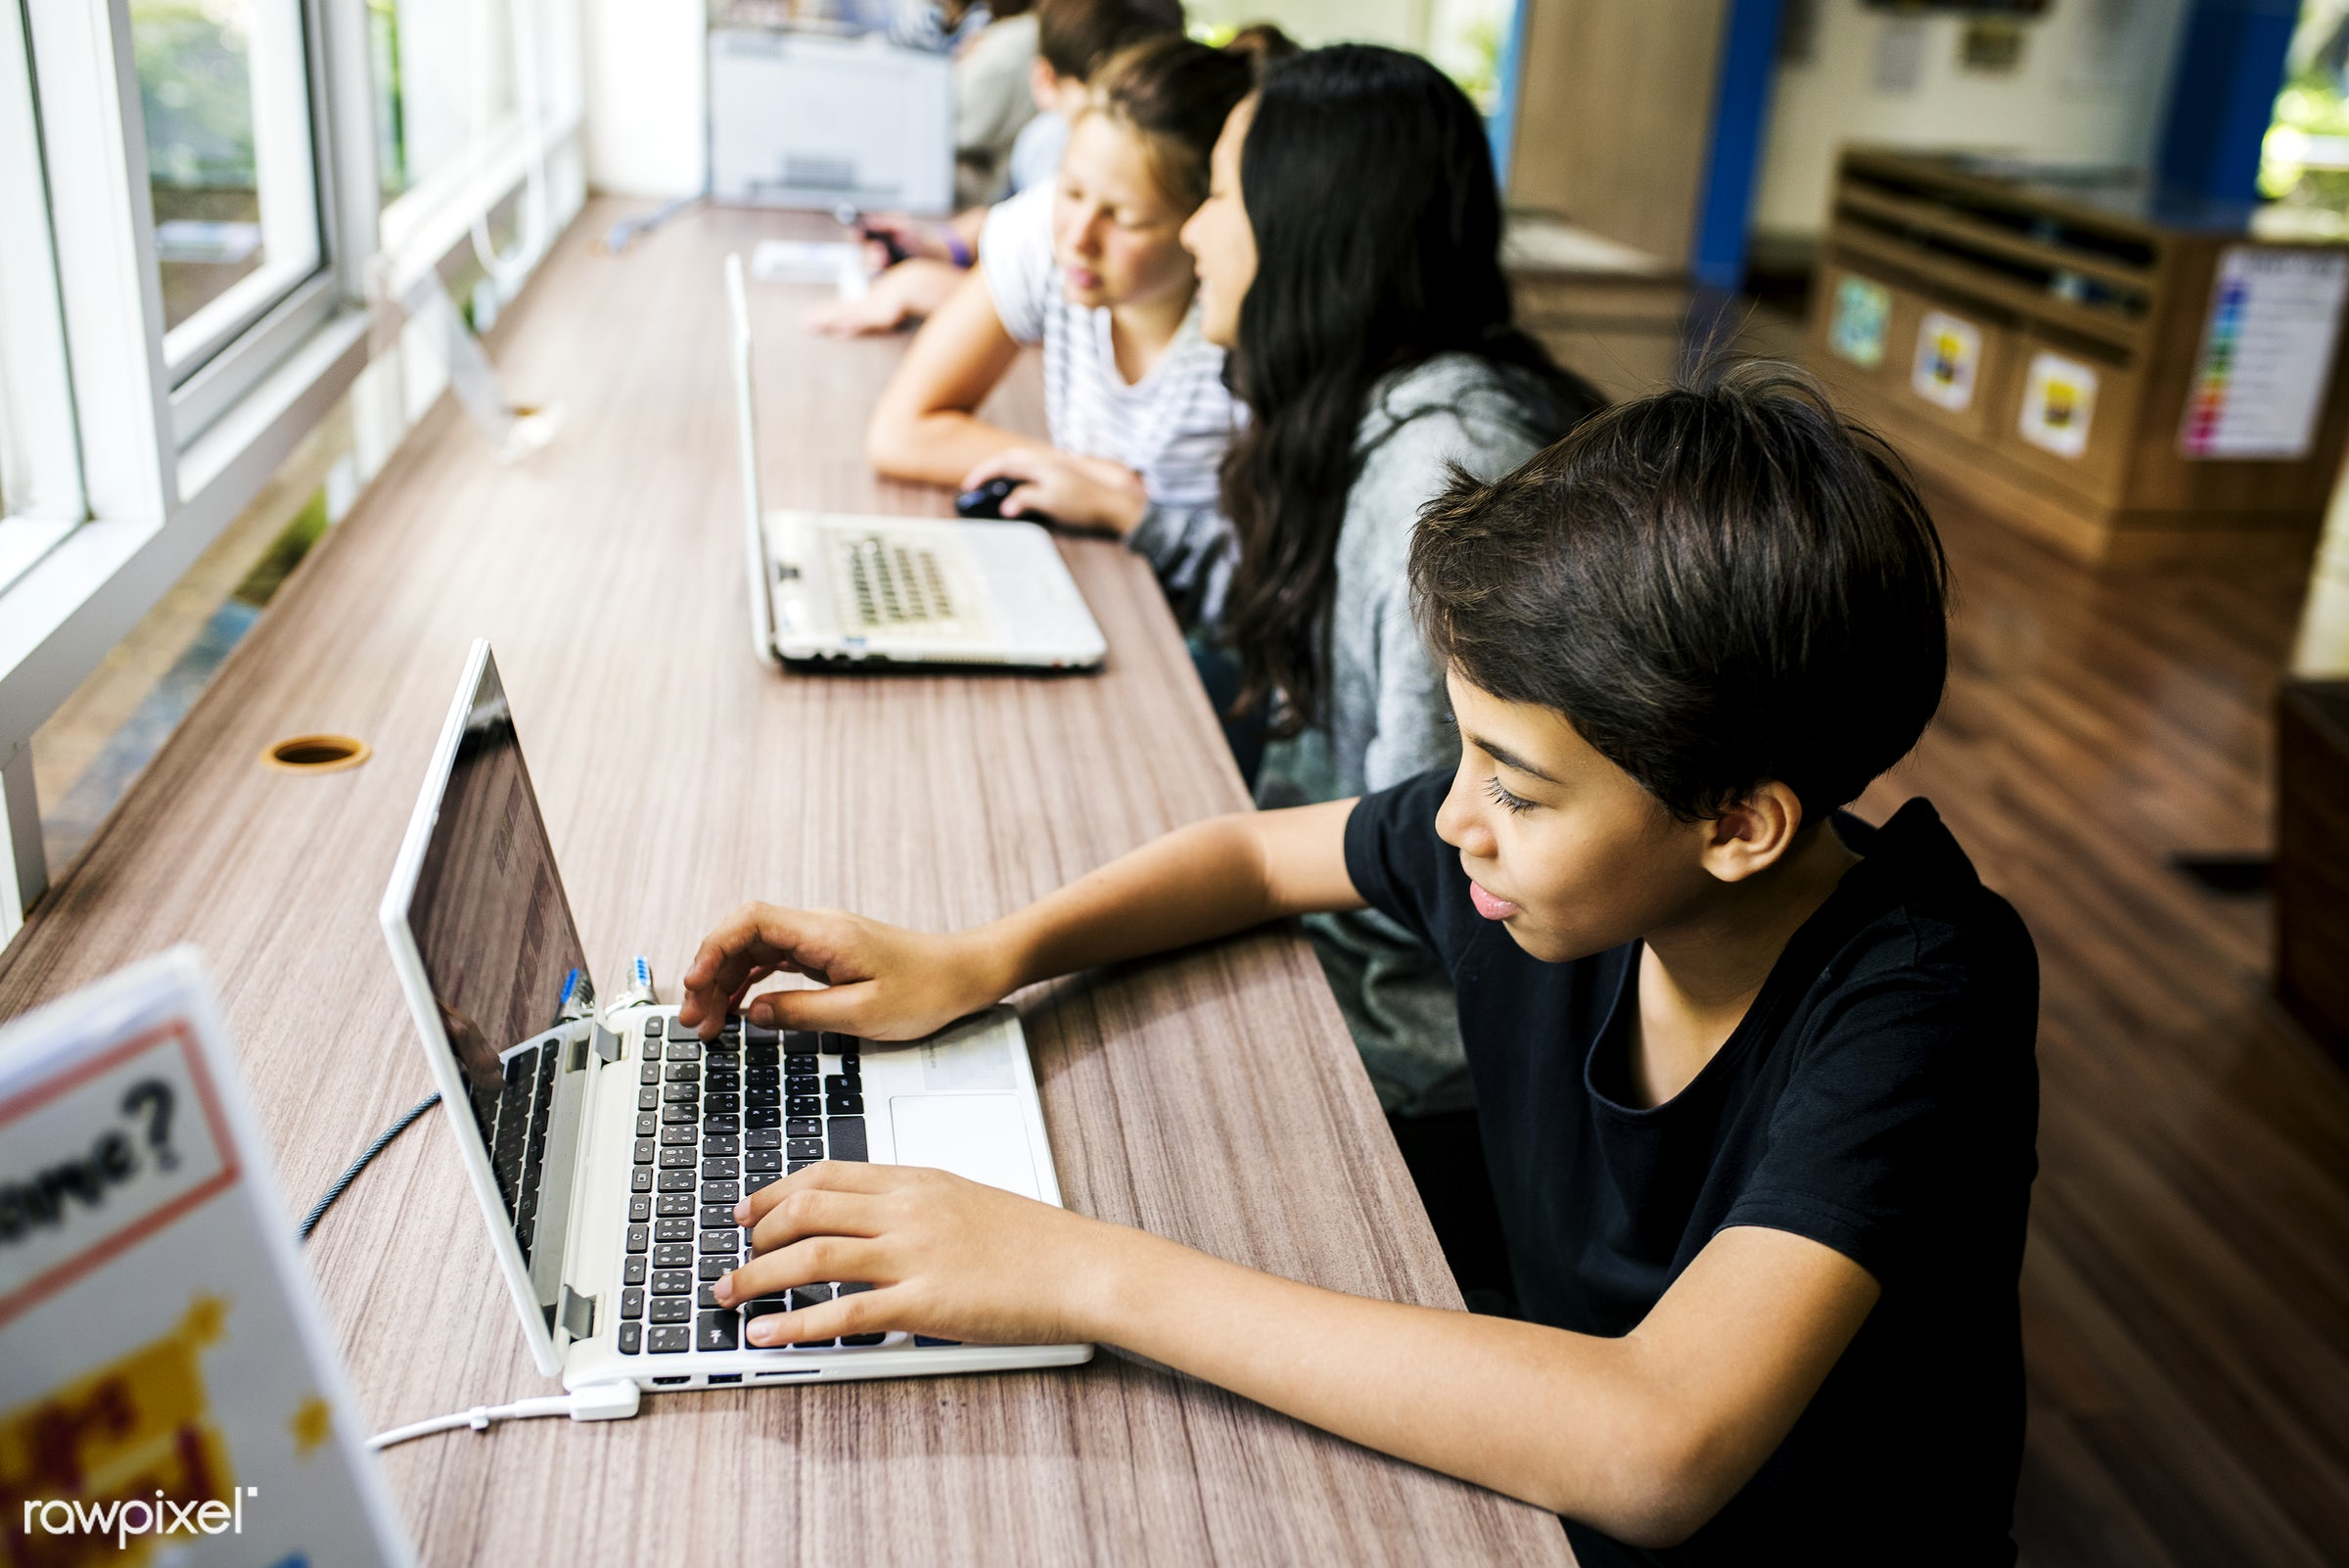 computer, using, technology, education, digital, online, casual, laptop, typing, girls, connection, diversity, communication...